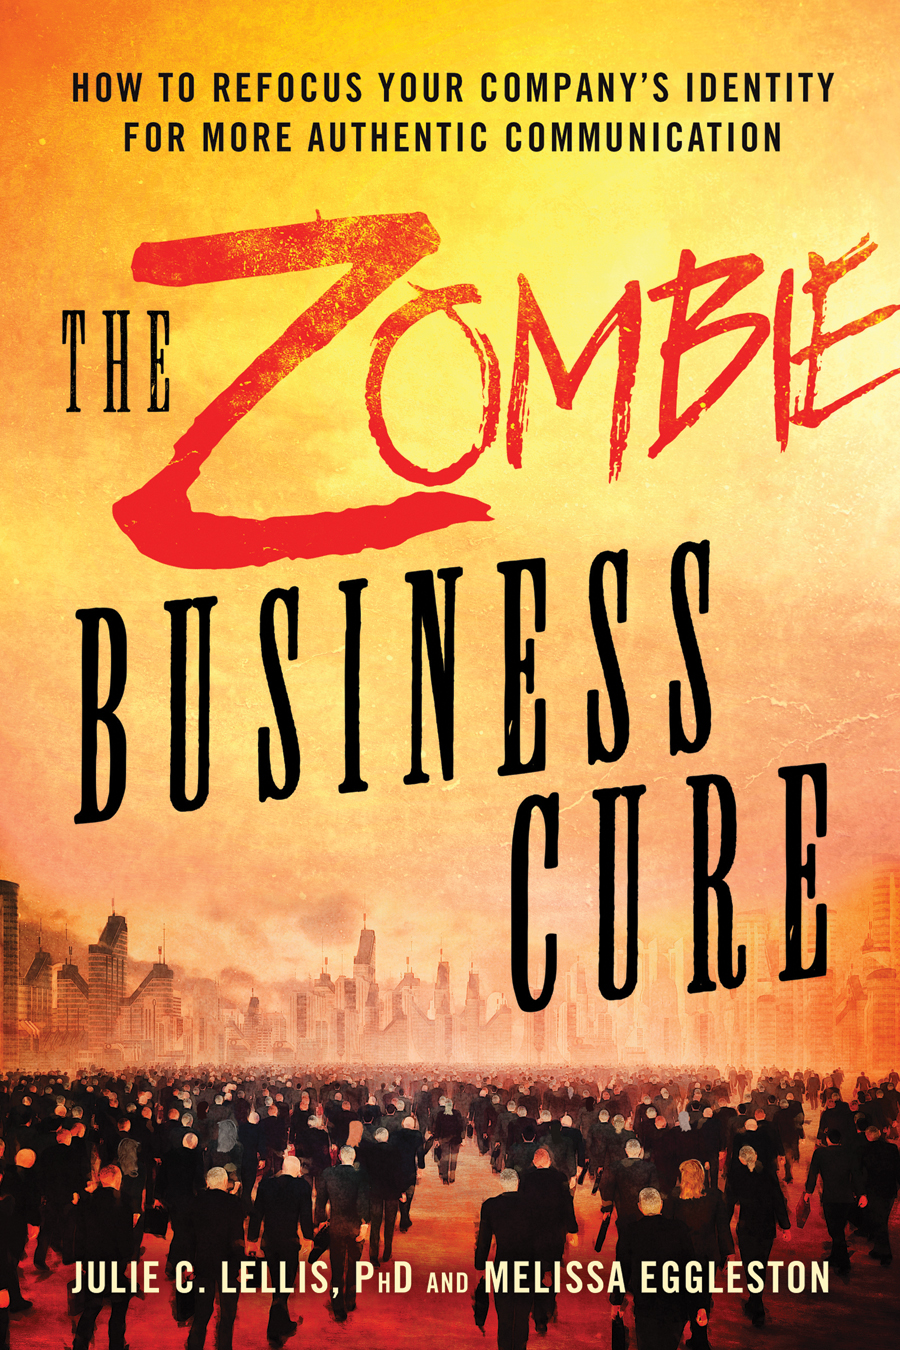 Cover of The Zombie Business Cure book